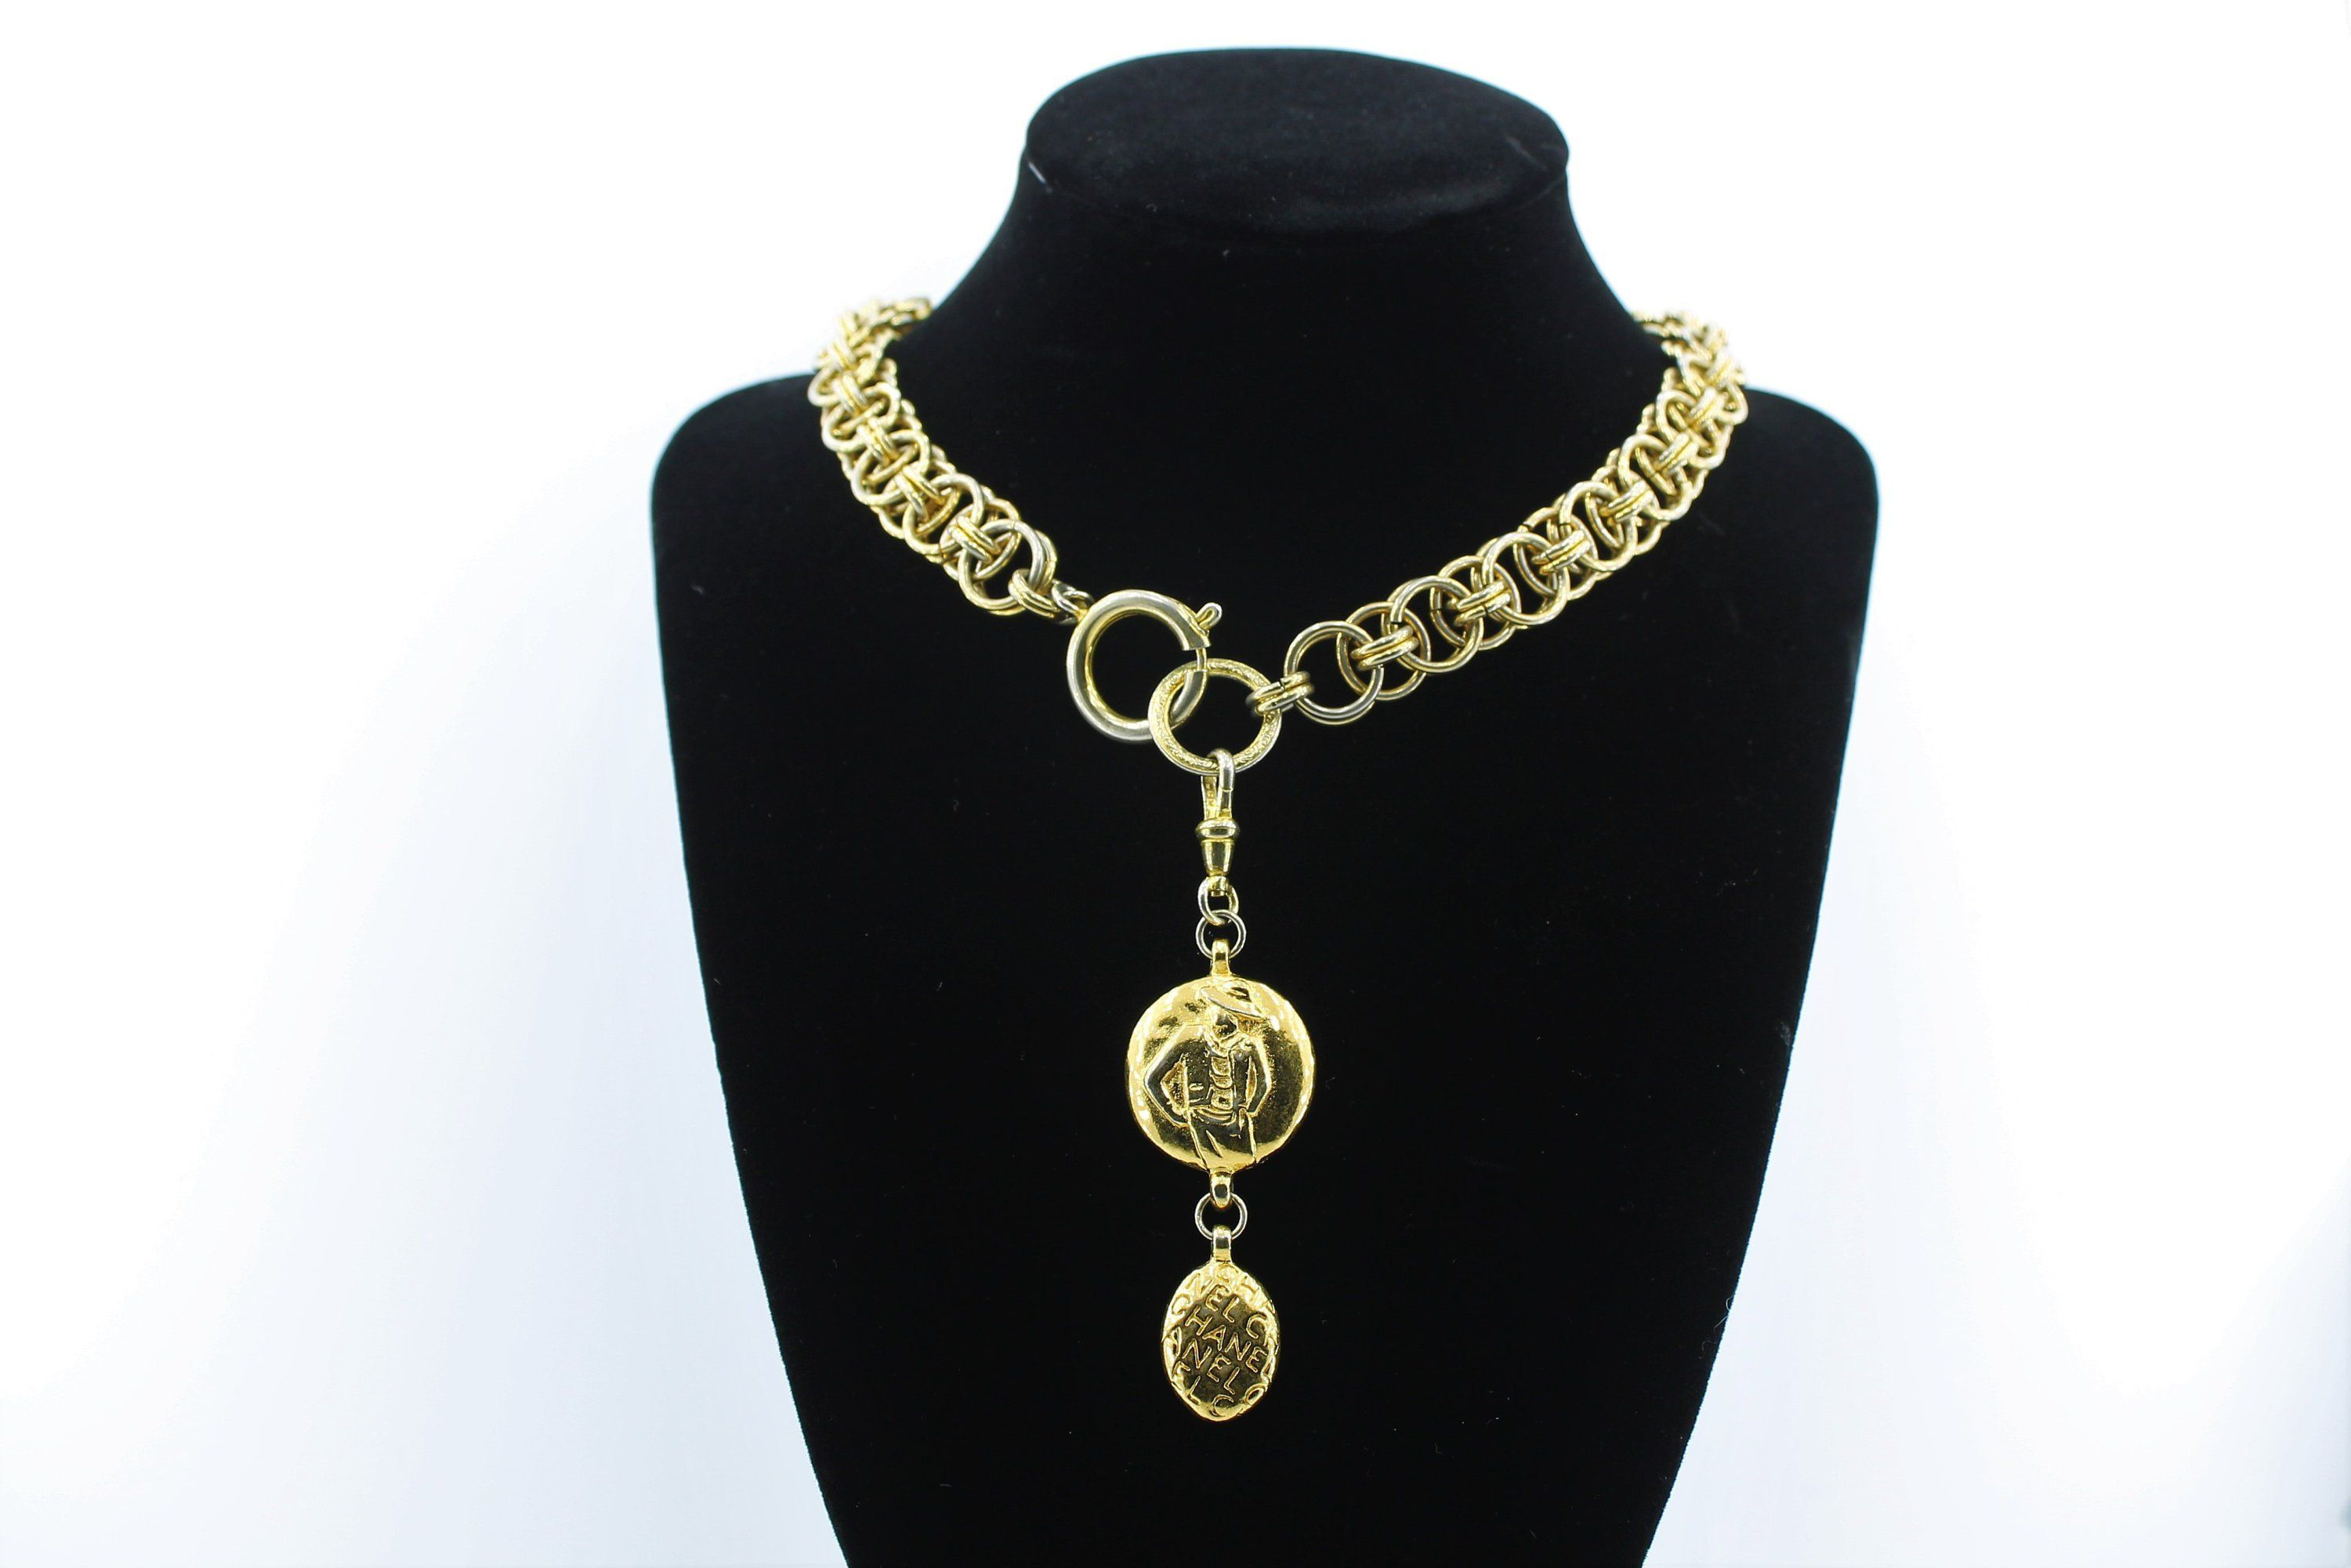 CHANEL Luxury Coco Chanel Necklace / Rare Signed Jewelry